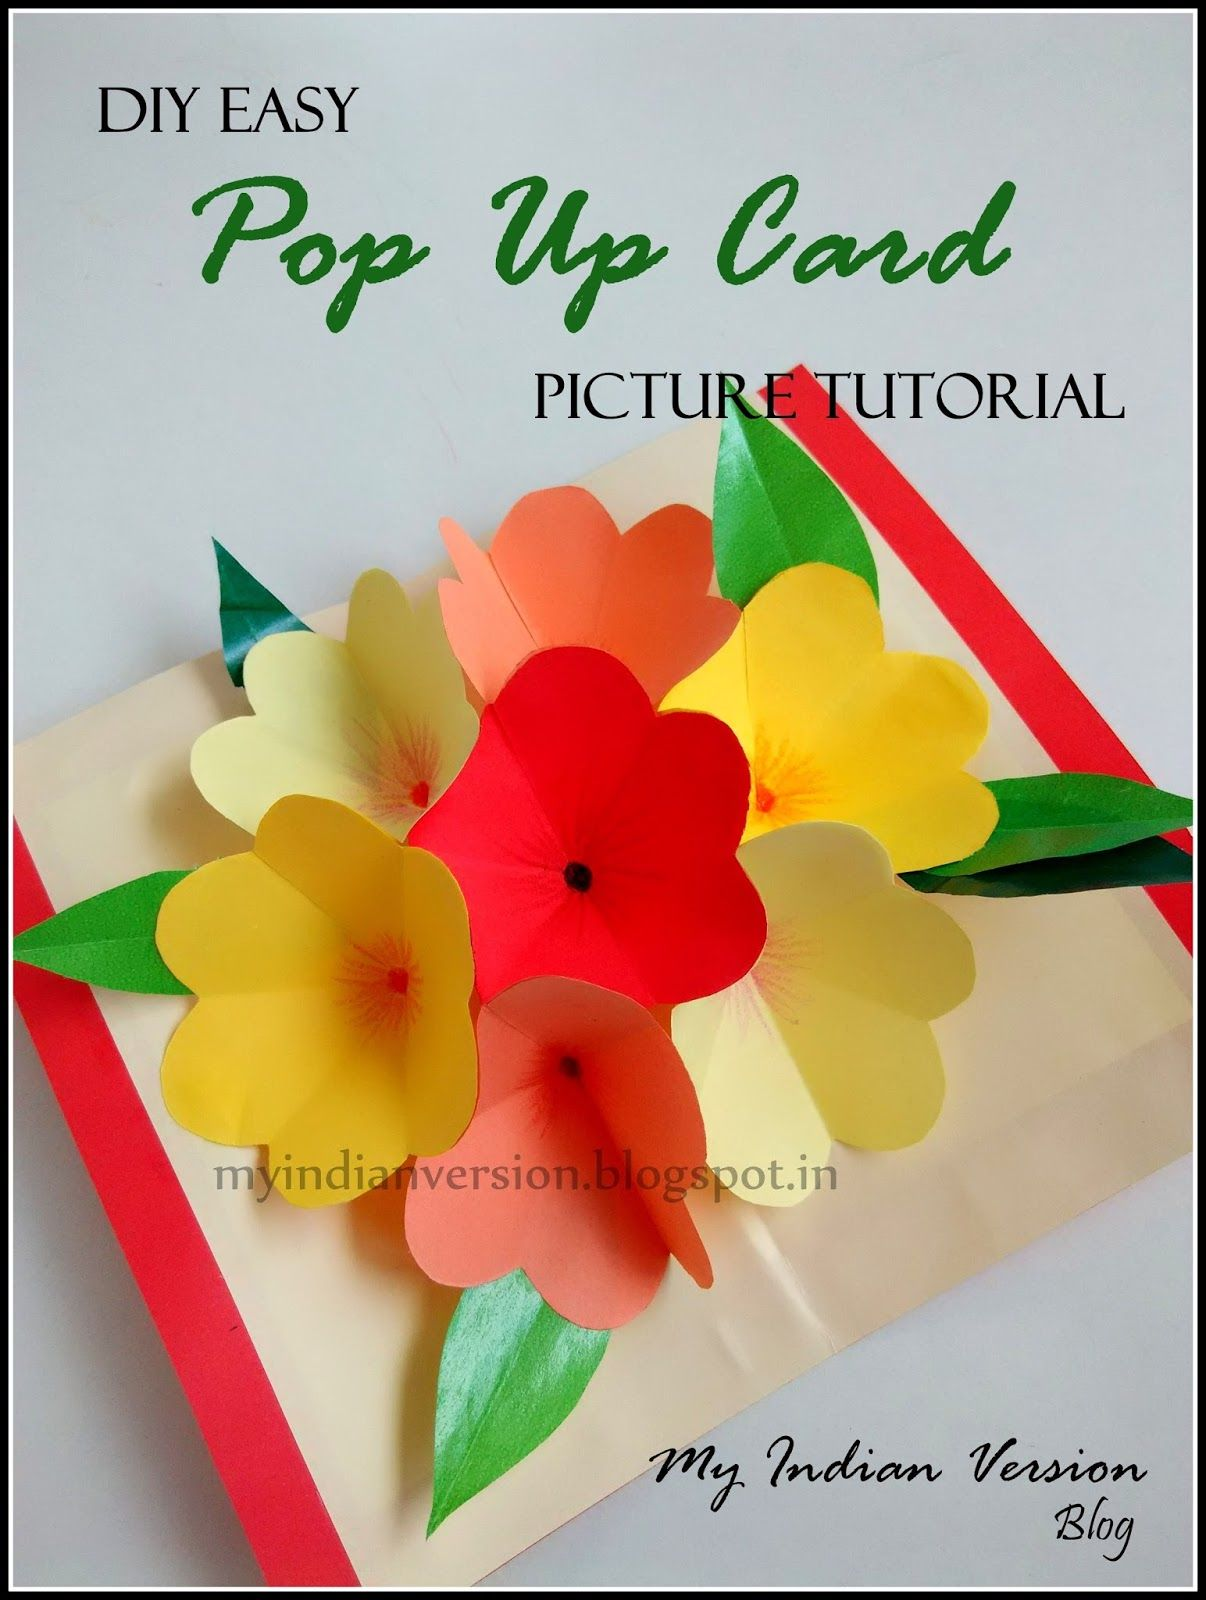 Diy easy pop up card photo tutorial tutorials cards and card diy easy pop up card photo tutorial kristyandbryce Images